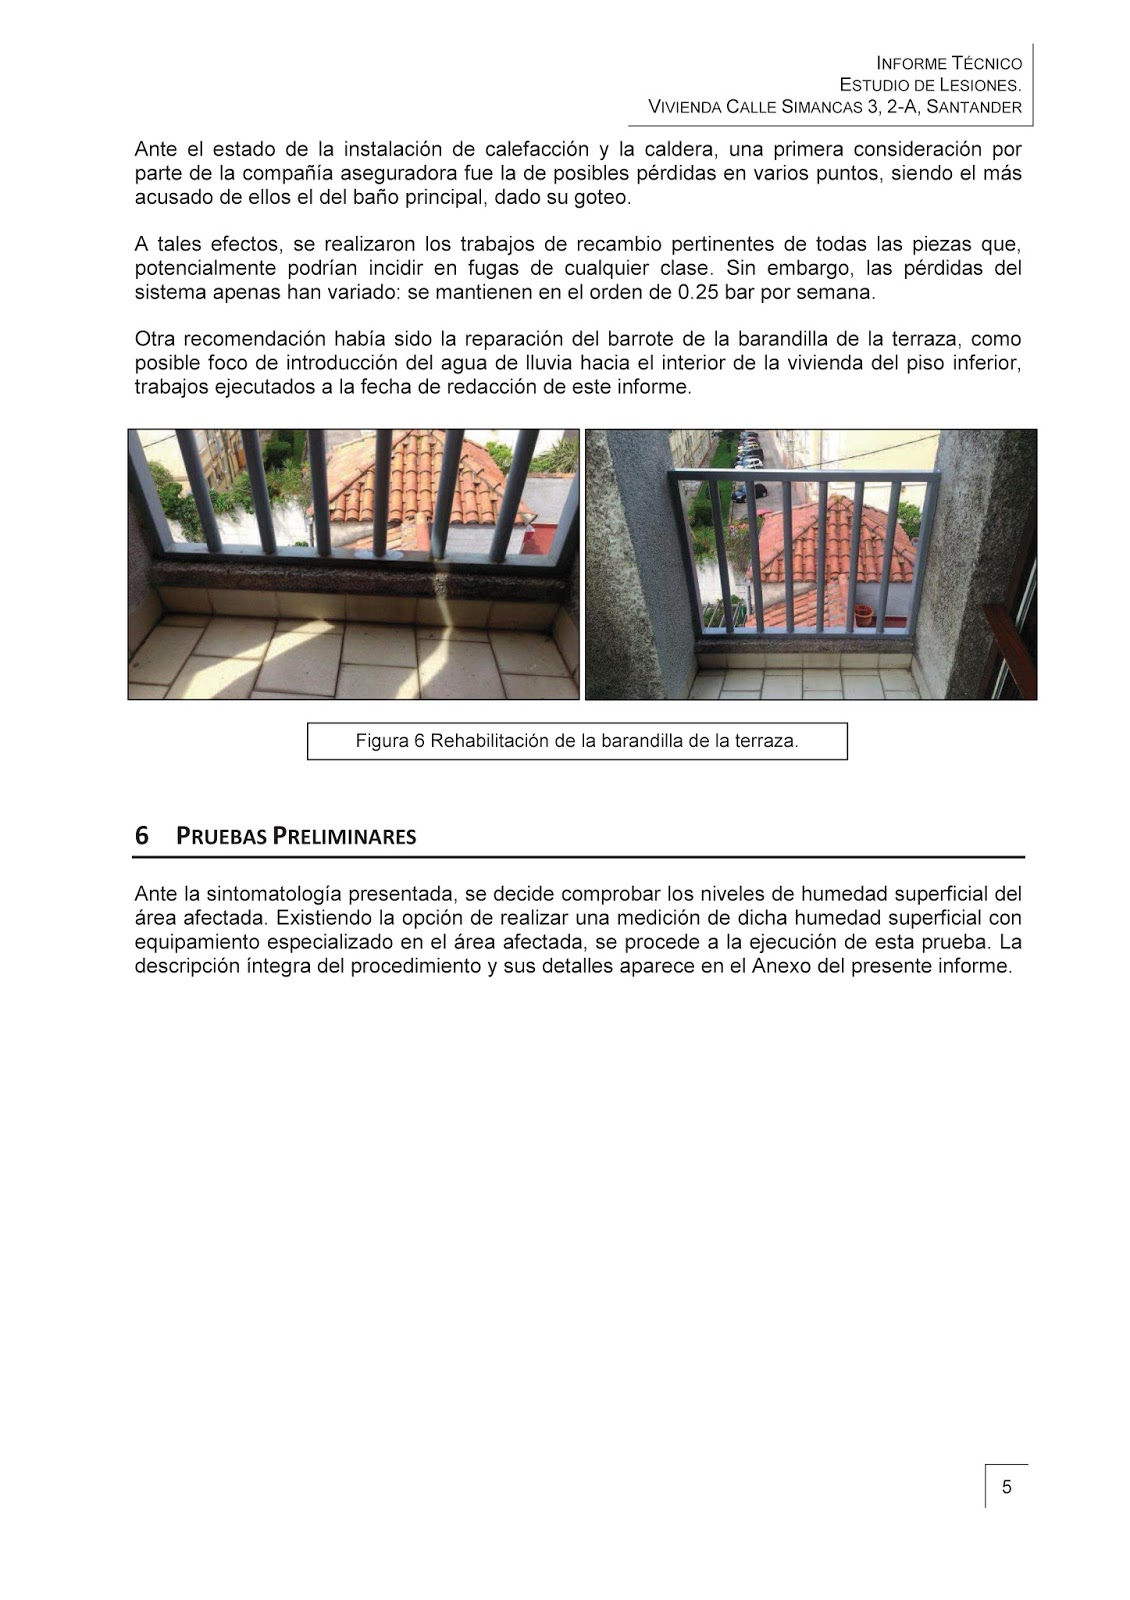 Some Projects Technical Report Brief Of Damages In